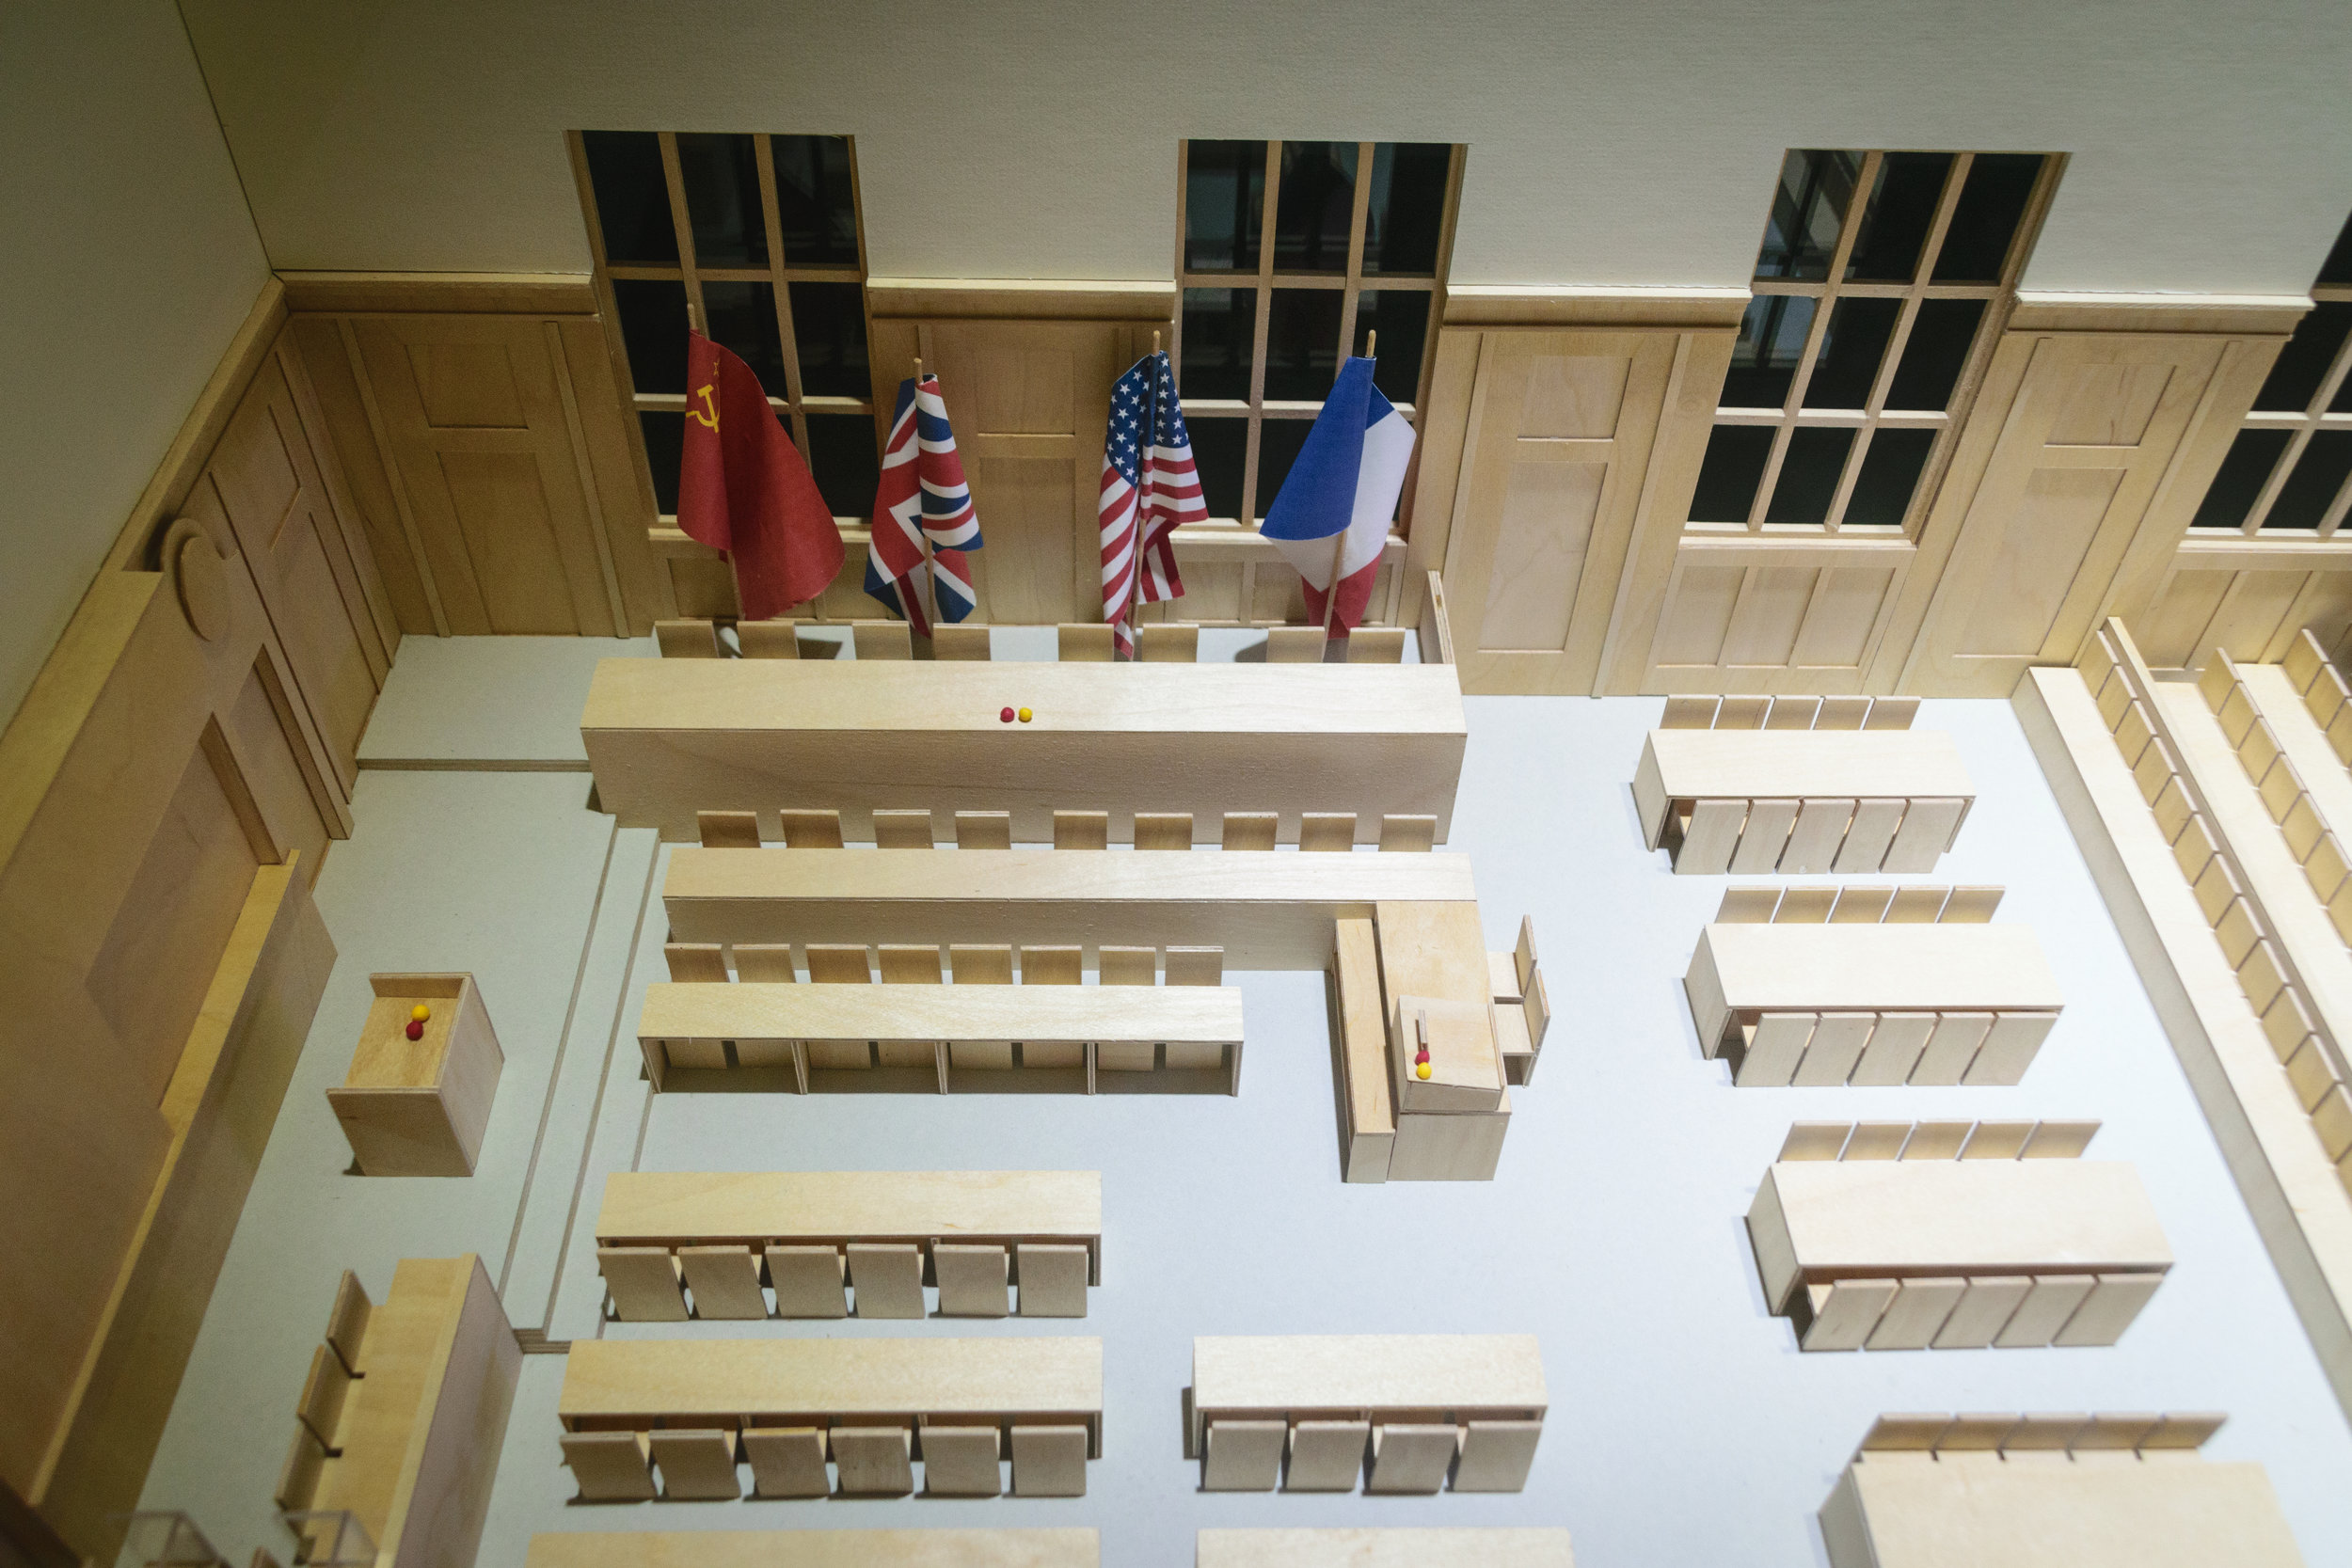 model of how the tribunal was conducted